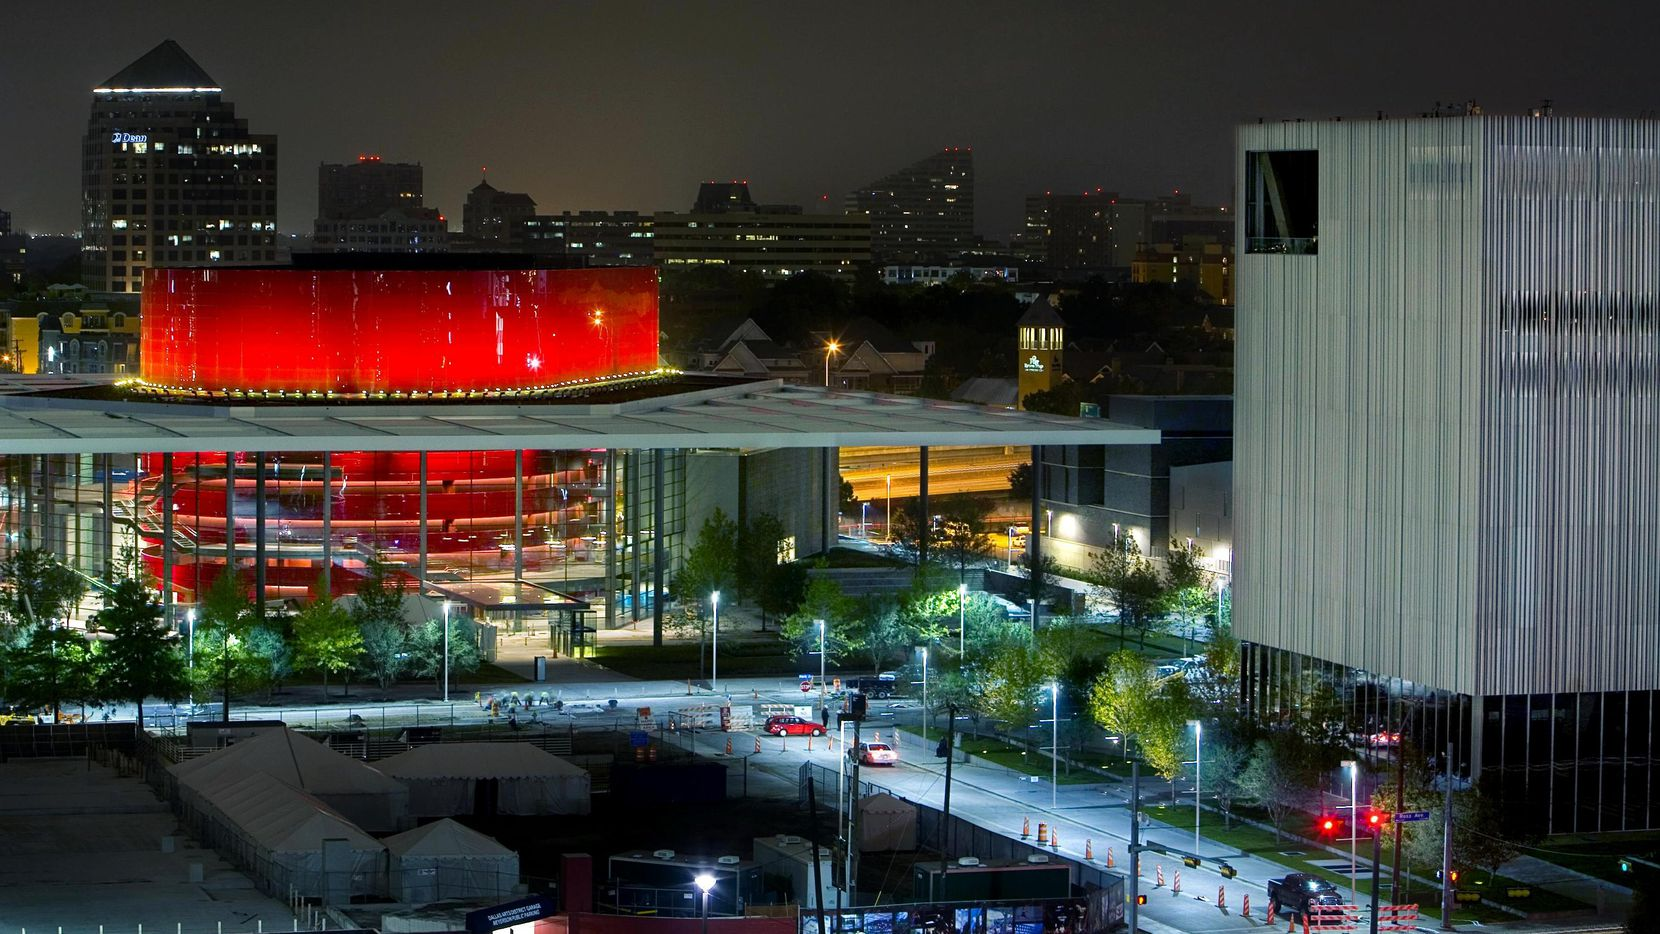 The red drum of the Margot and Bill Winspear Opera House glows in the night, with the Dee and Charles Wyly Theatre to the right.